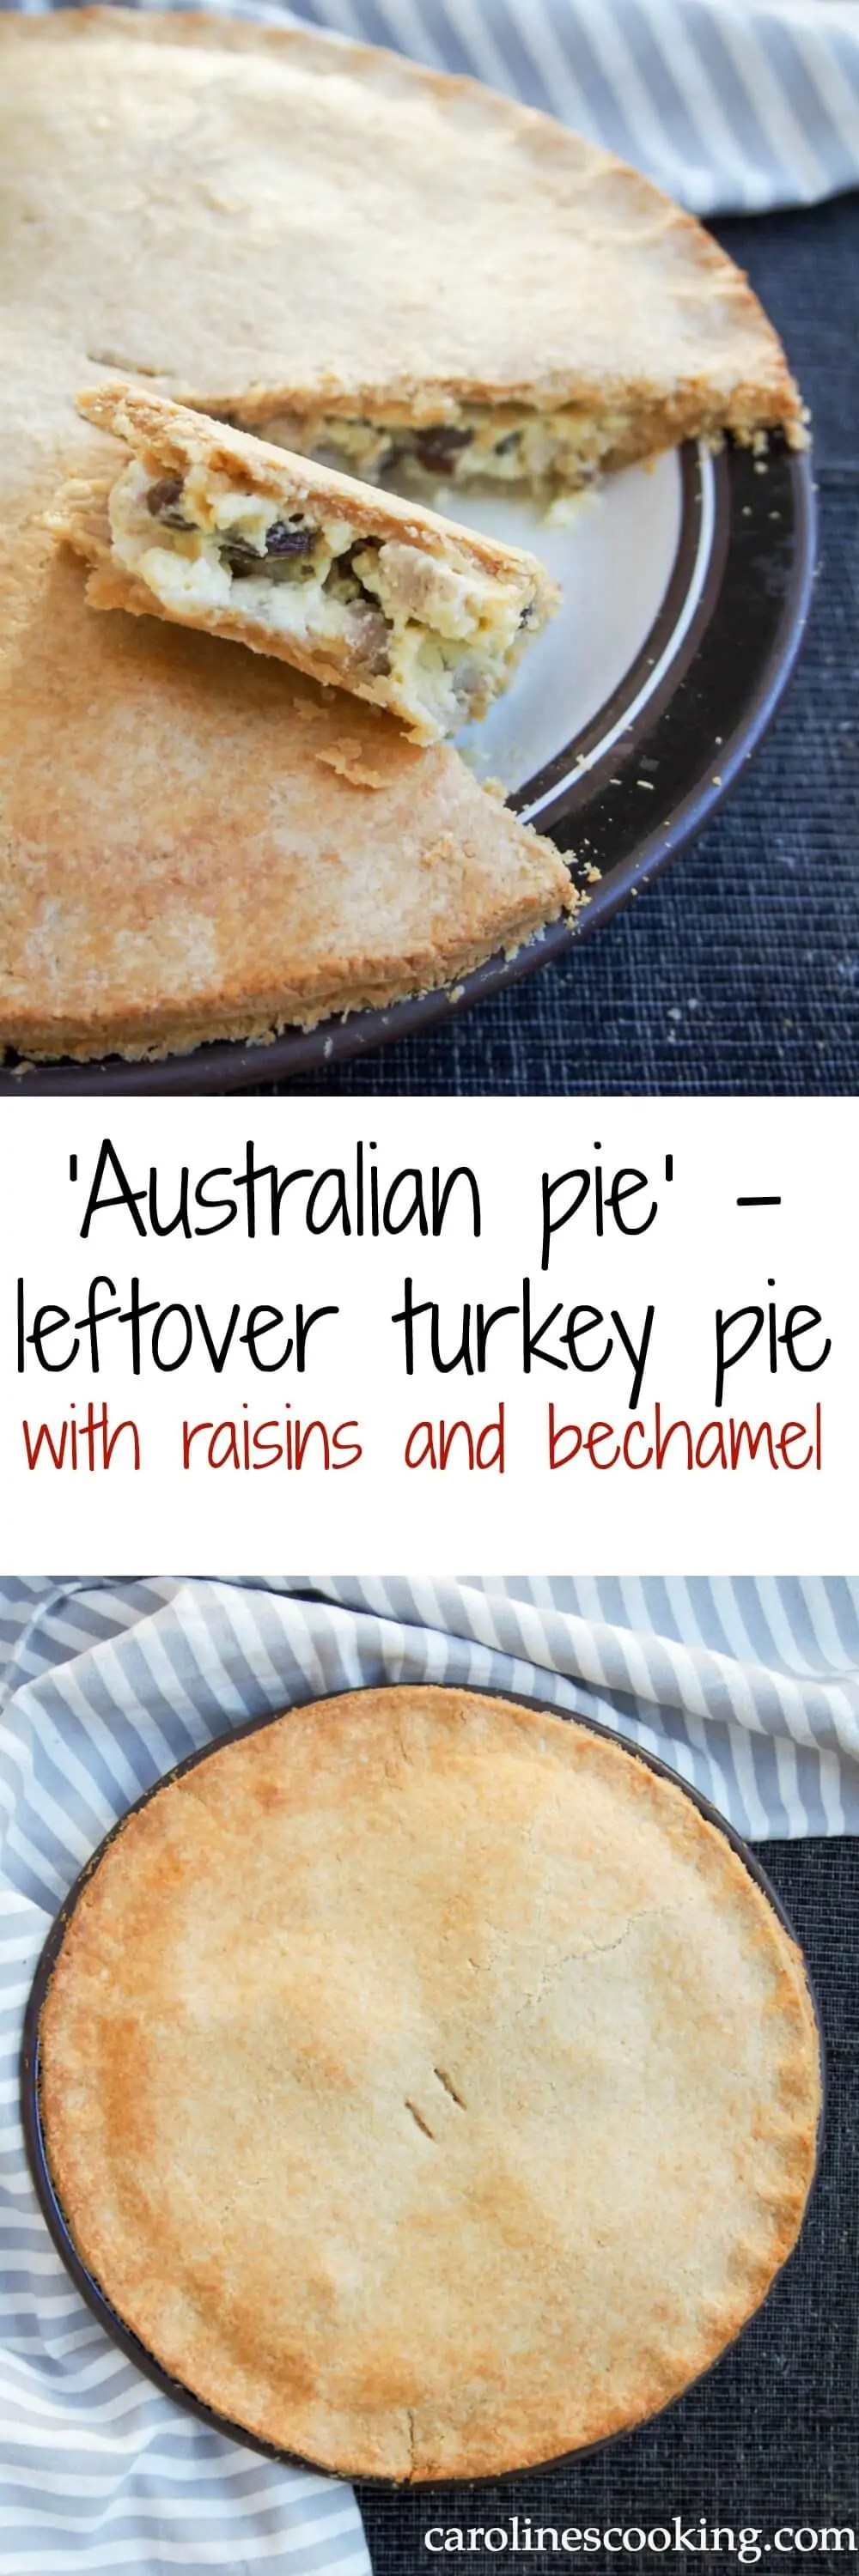 'Australian pie' - leftover turkey pie with raisins and bechamel. Give leftover turkey/chicken a tasty new lease of life with this leftover turkey pie with raisins and bechamel. Easy to make, so comforting & delicious.